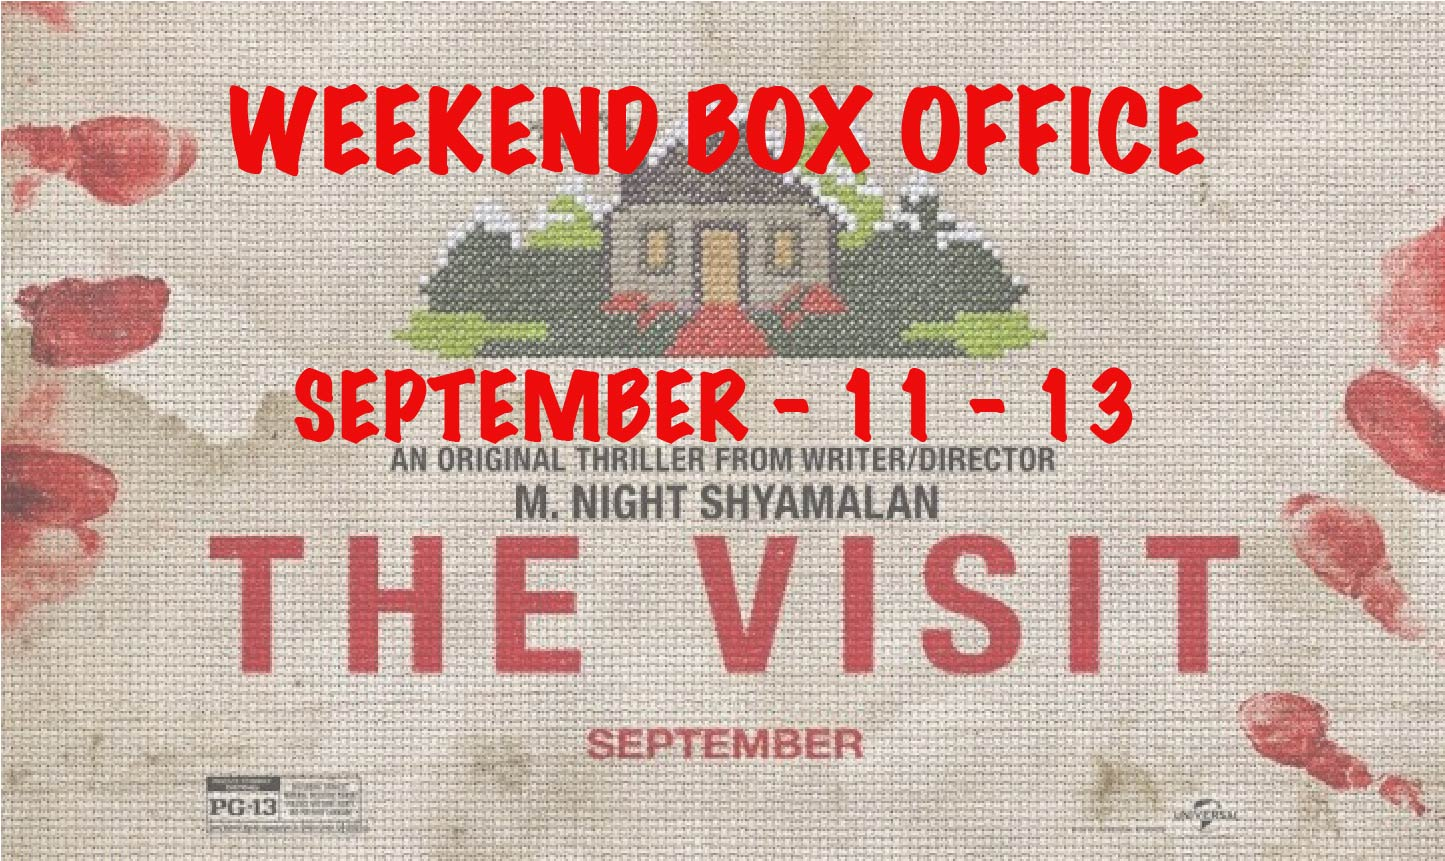 weekend box office september 11 13 2015 everything movie reviews. Black Bedroom Furniture Sets. Home Design Ideas